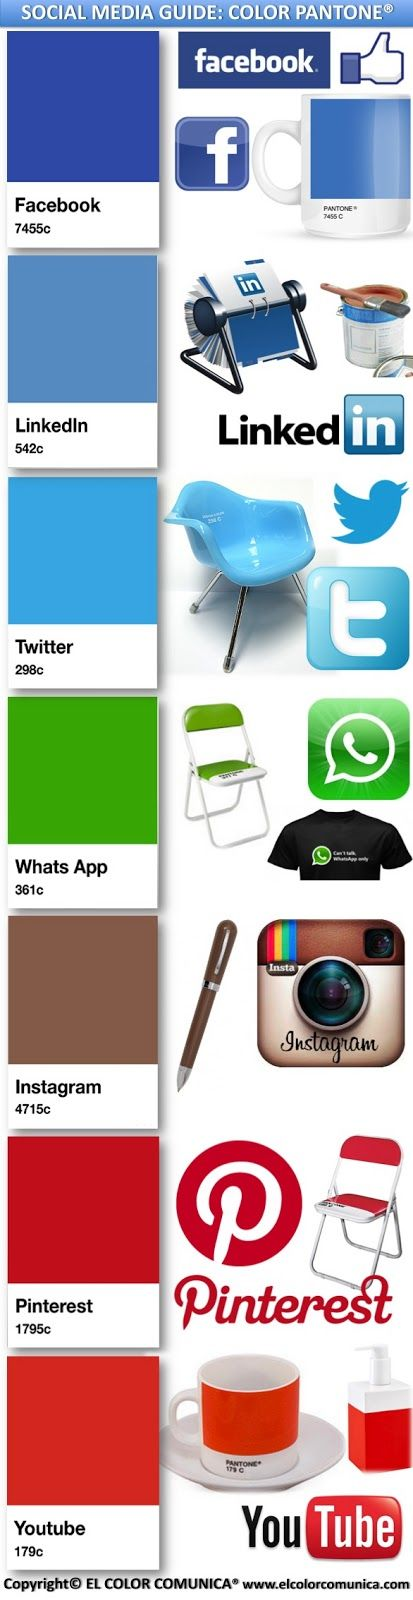 Social media and app pantone colors. #branding #marketing #Infographic